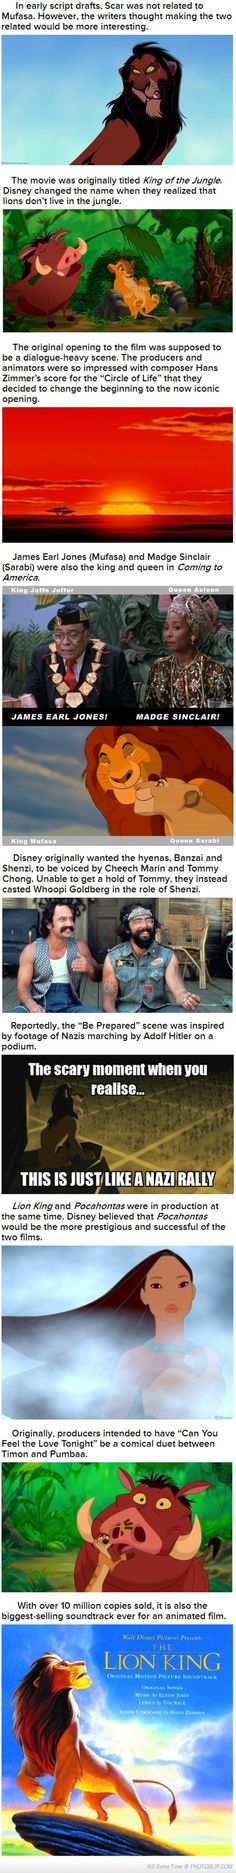 Amazing Facts About The Lion King...and I realized the Nazi thing when I was 8.